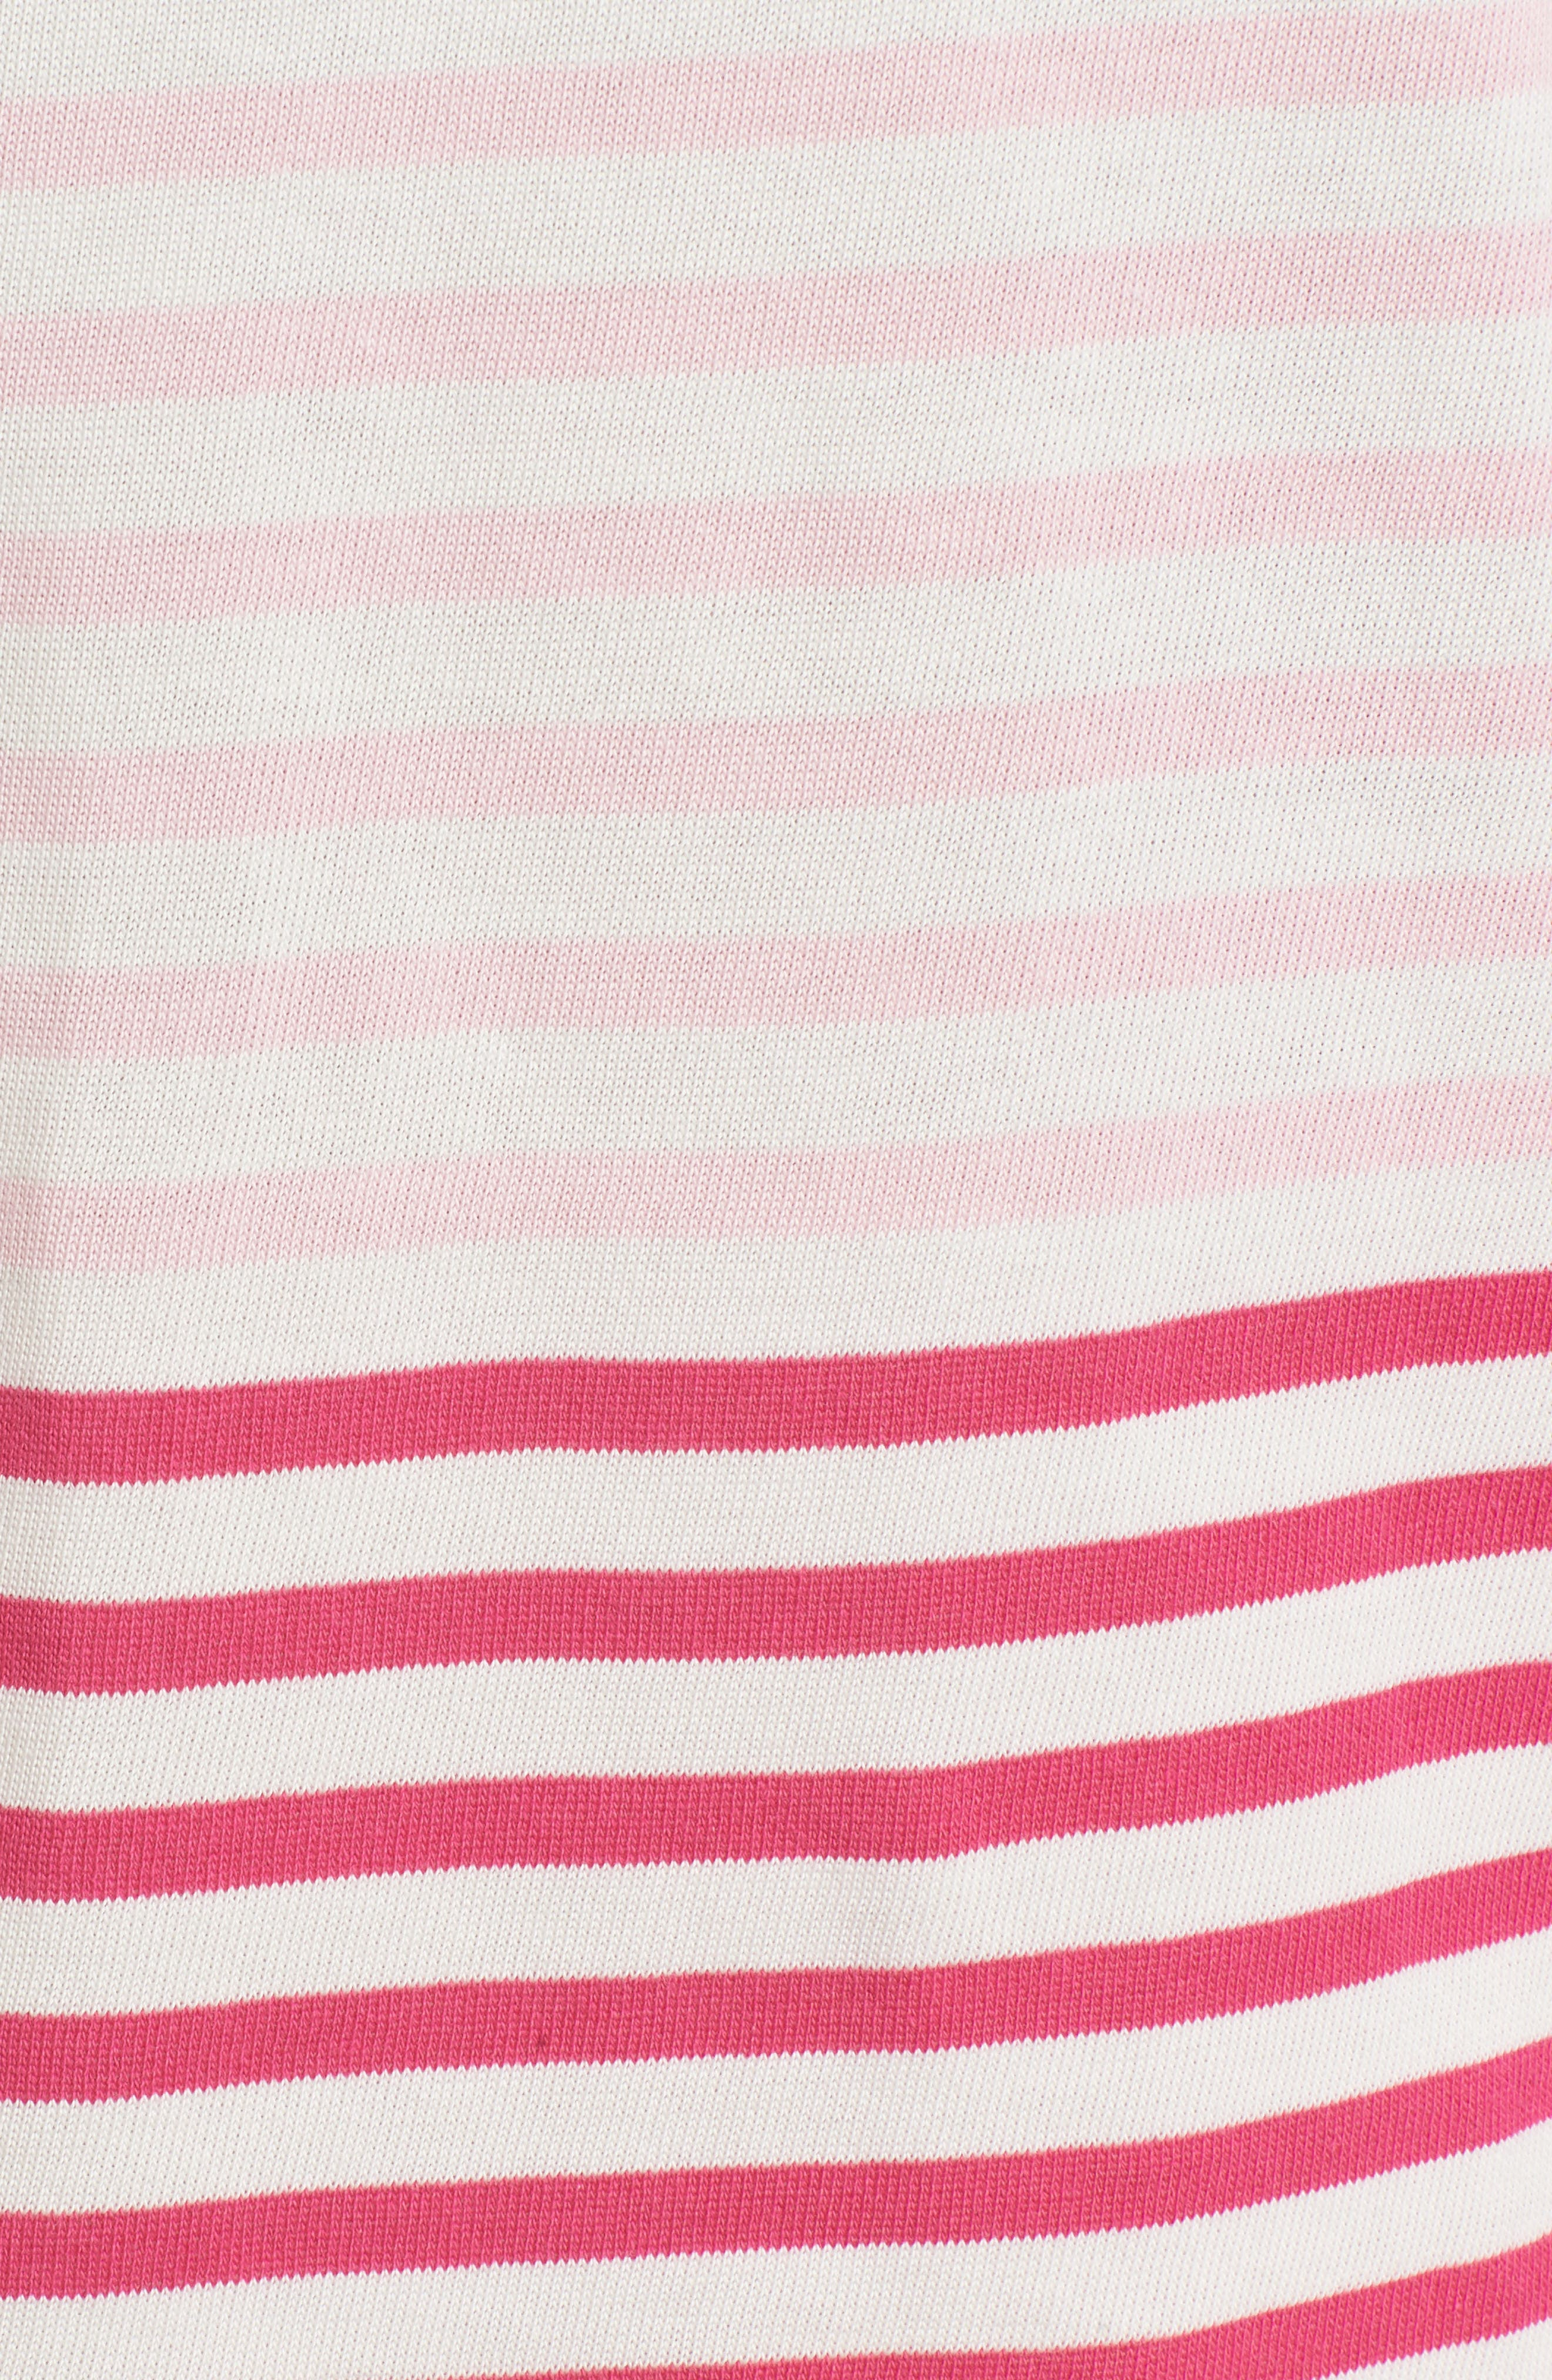 Mixed Stripe Pocket Cotton Knit Top,                             Alternate thumbnail 6, color,                             Rhododendron